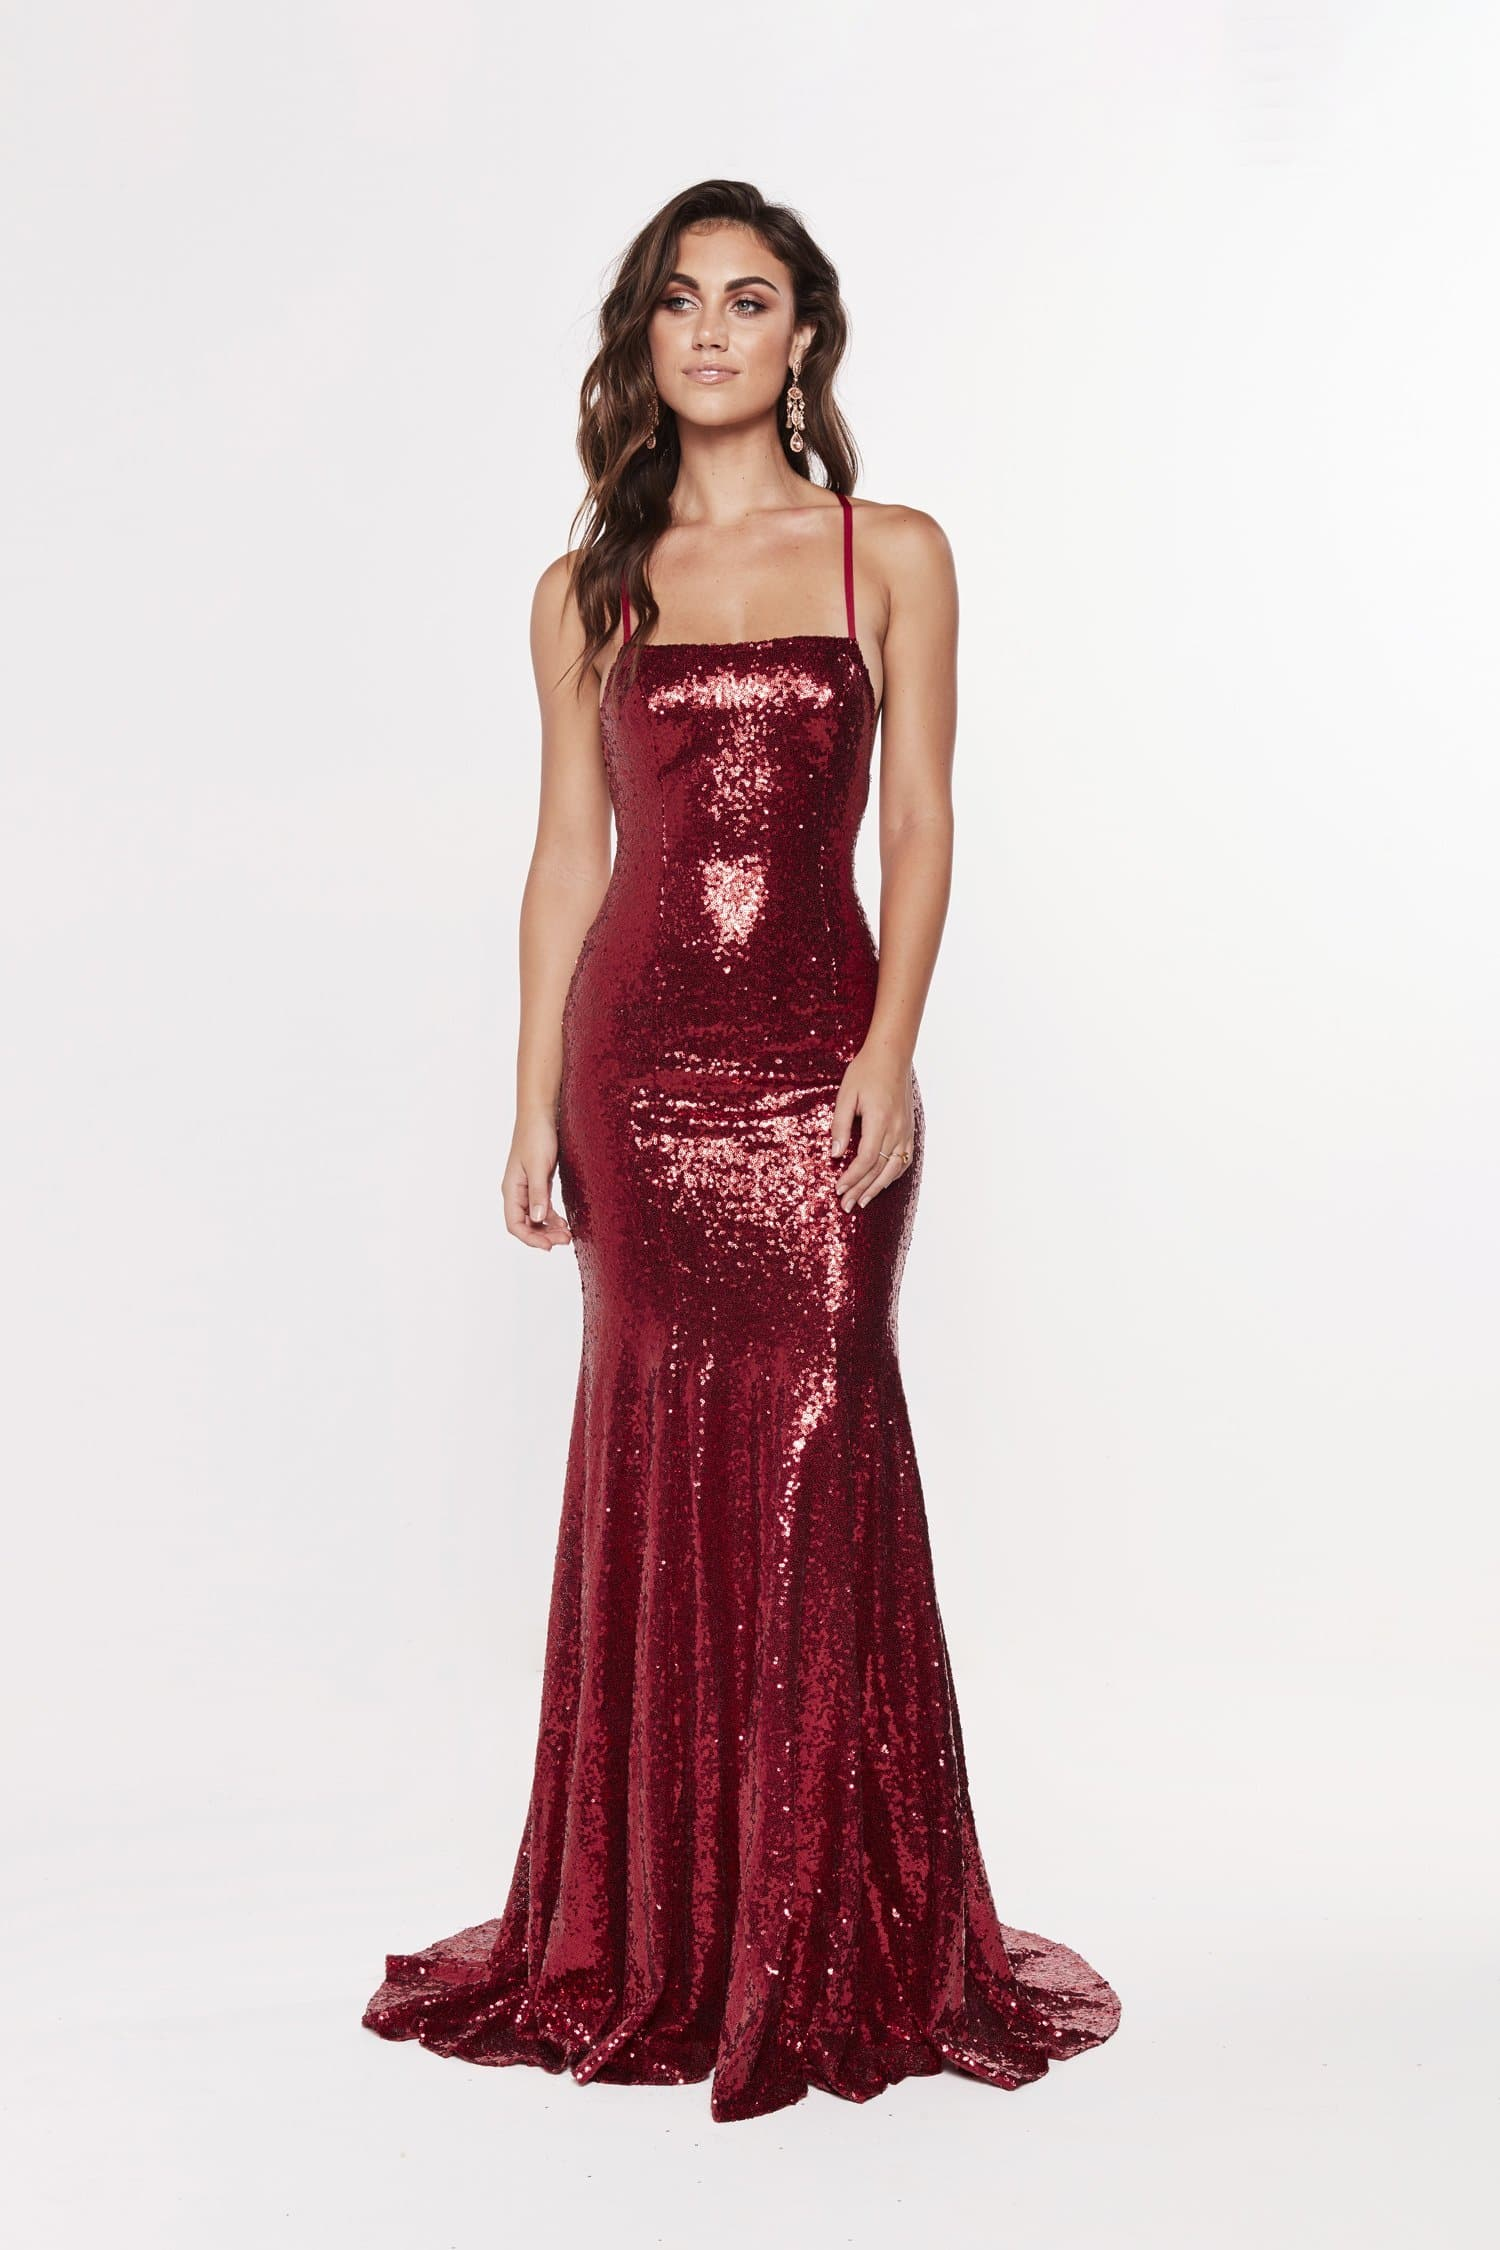 A&N Esmee - Deep Red Sequin Gown with Lace Up Back